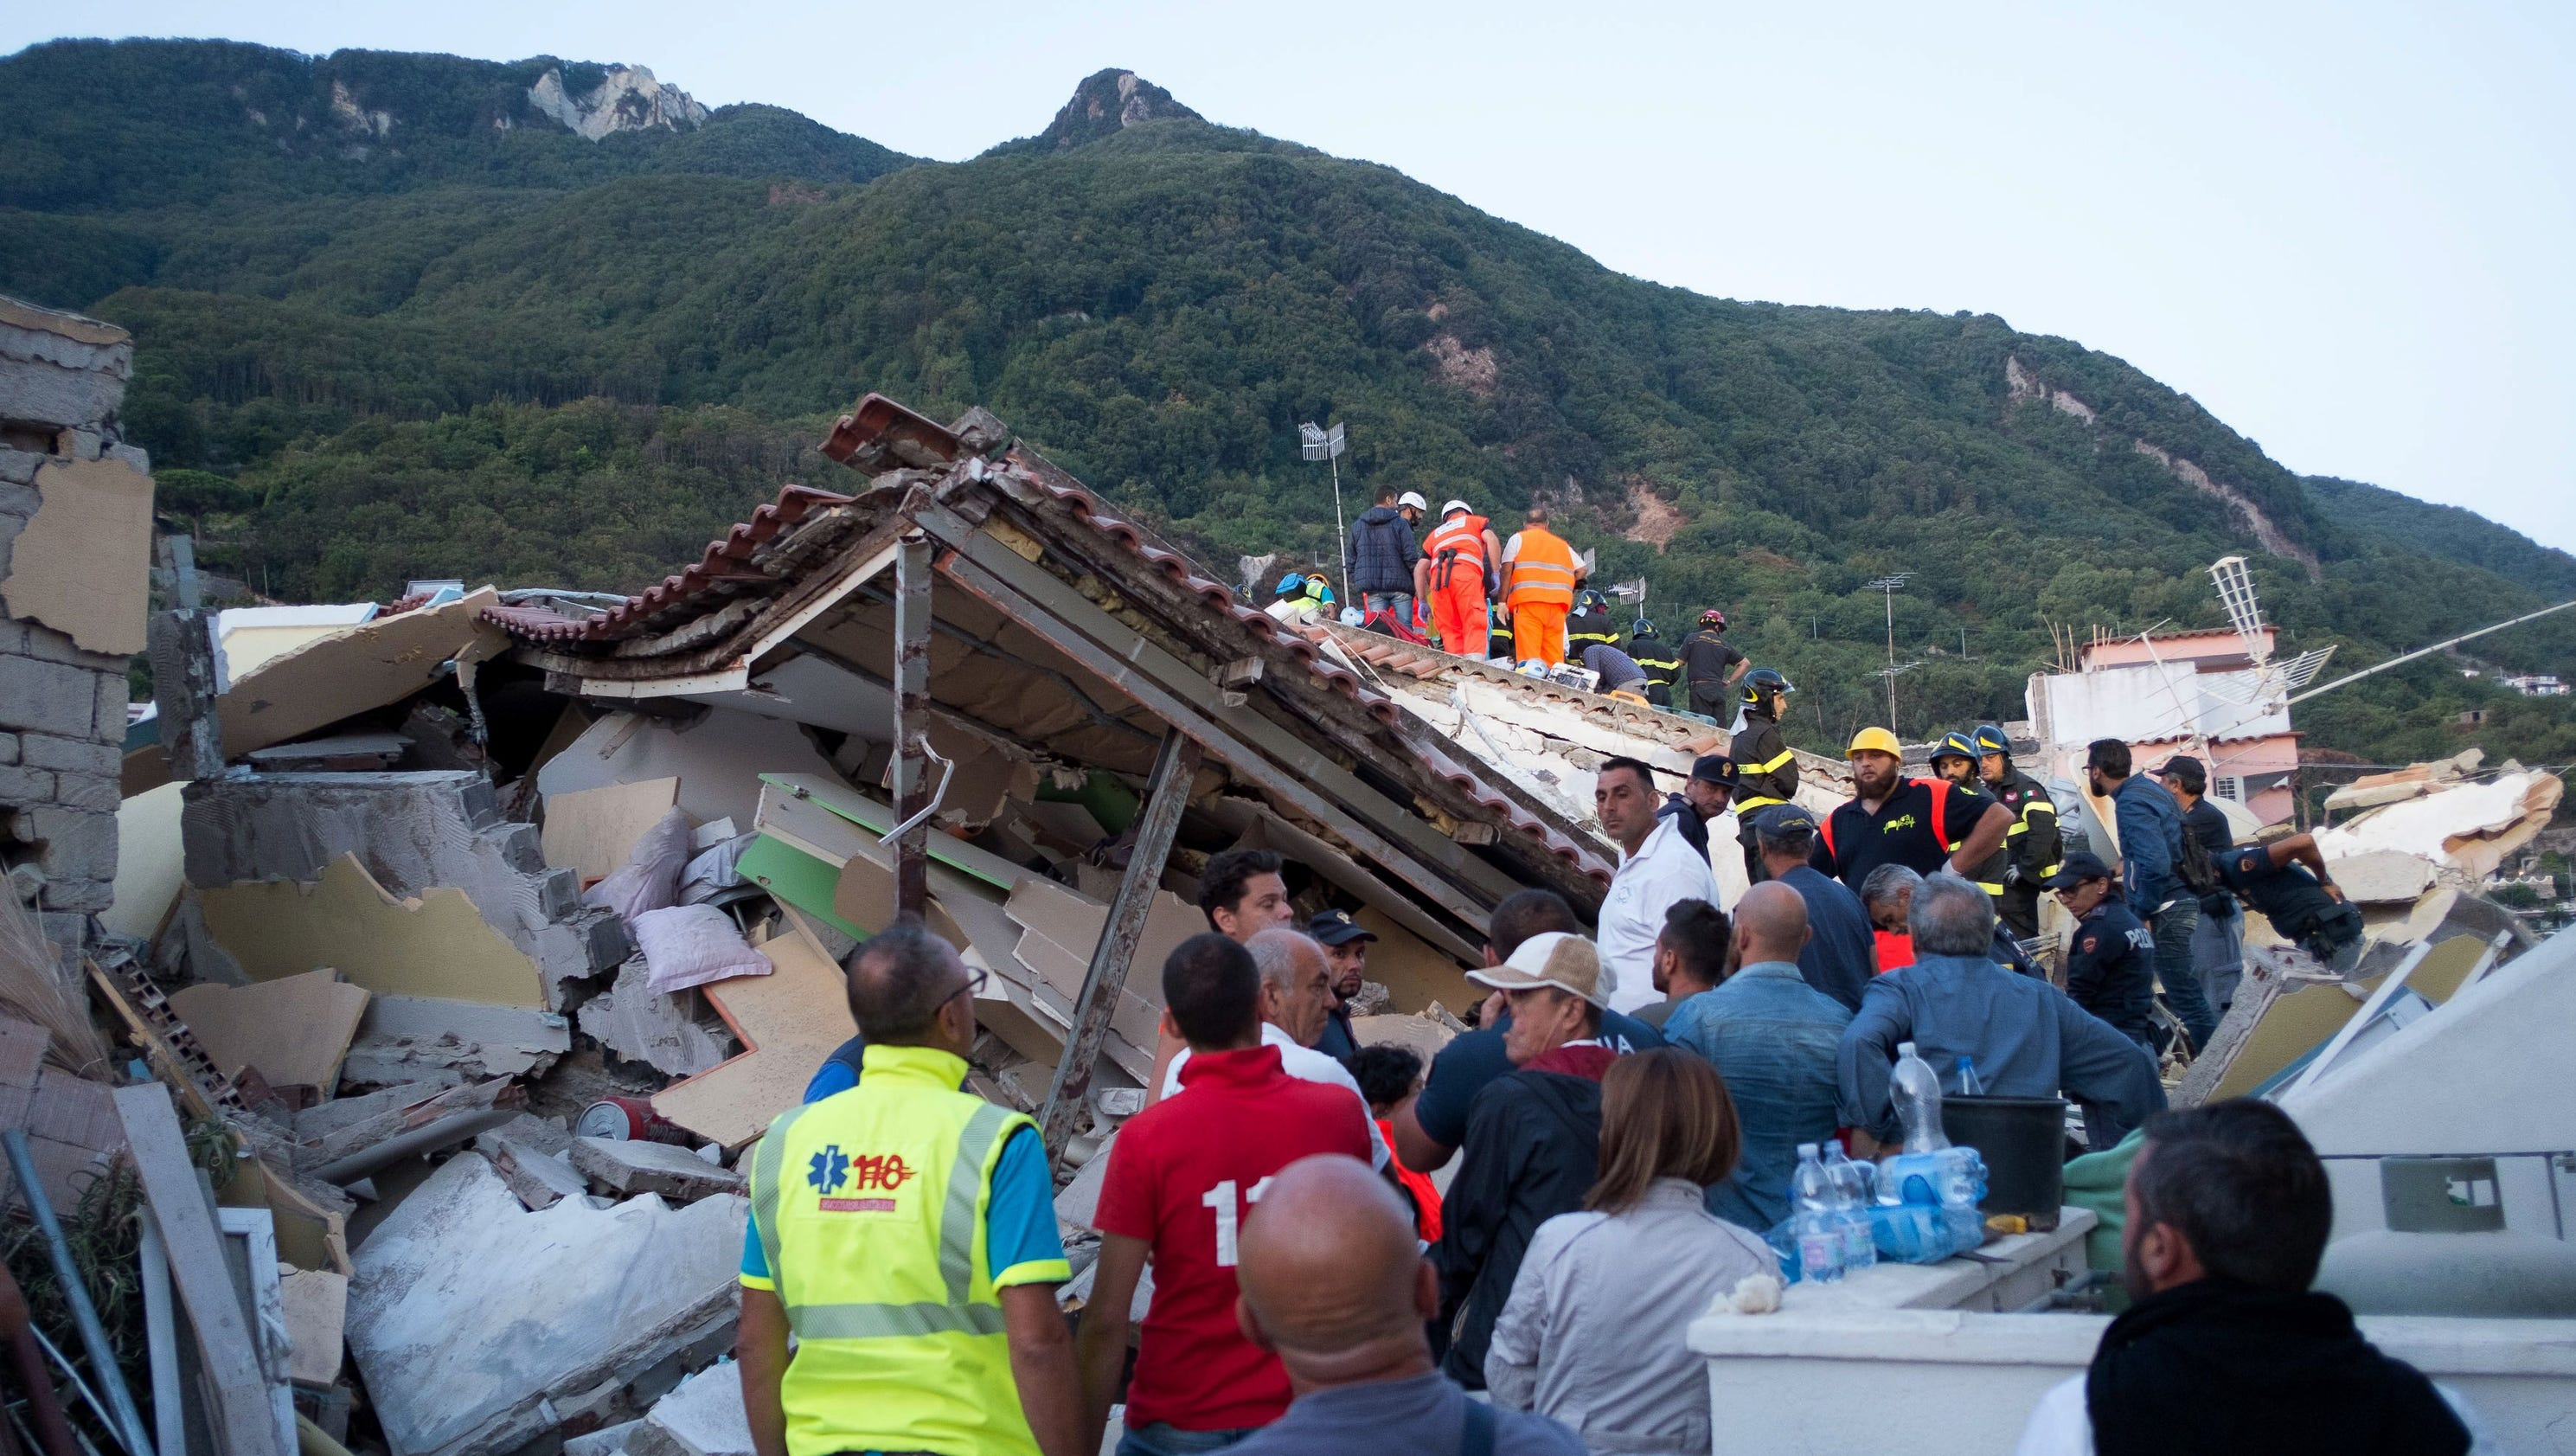 Italy earthquake: 1 dead, 2 kids rescued from rubble